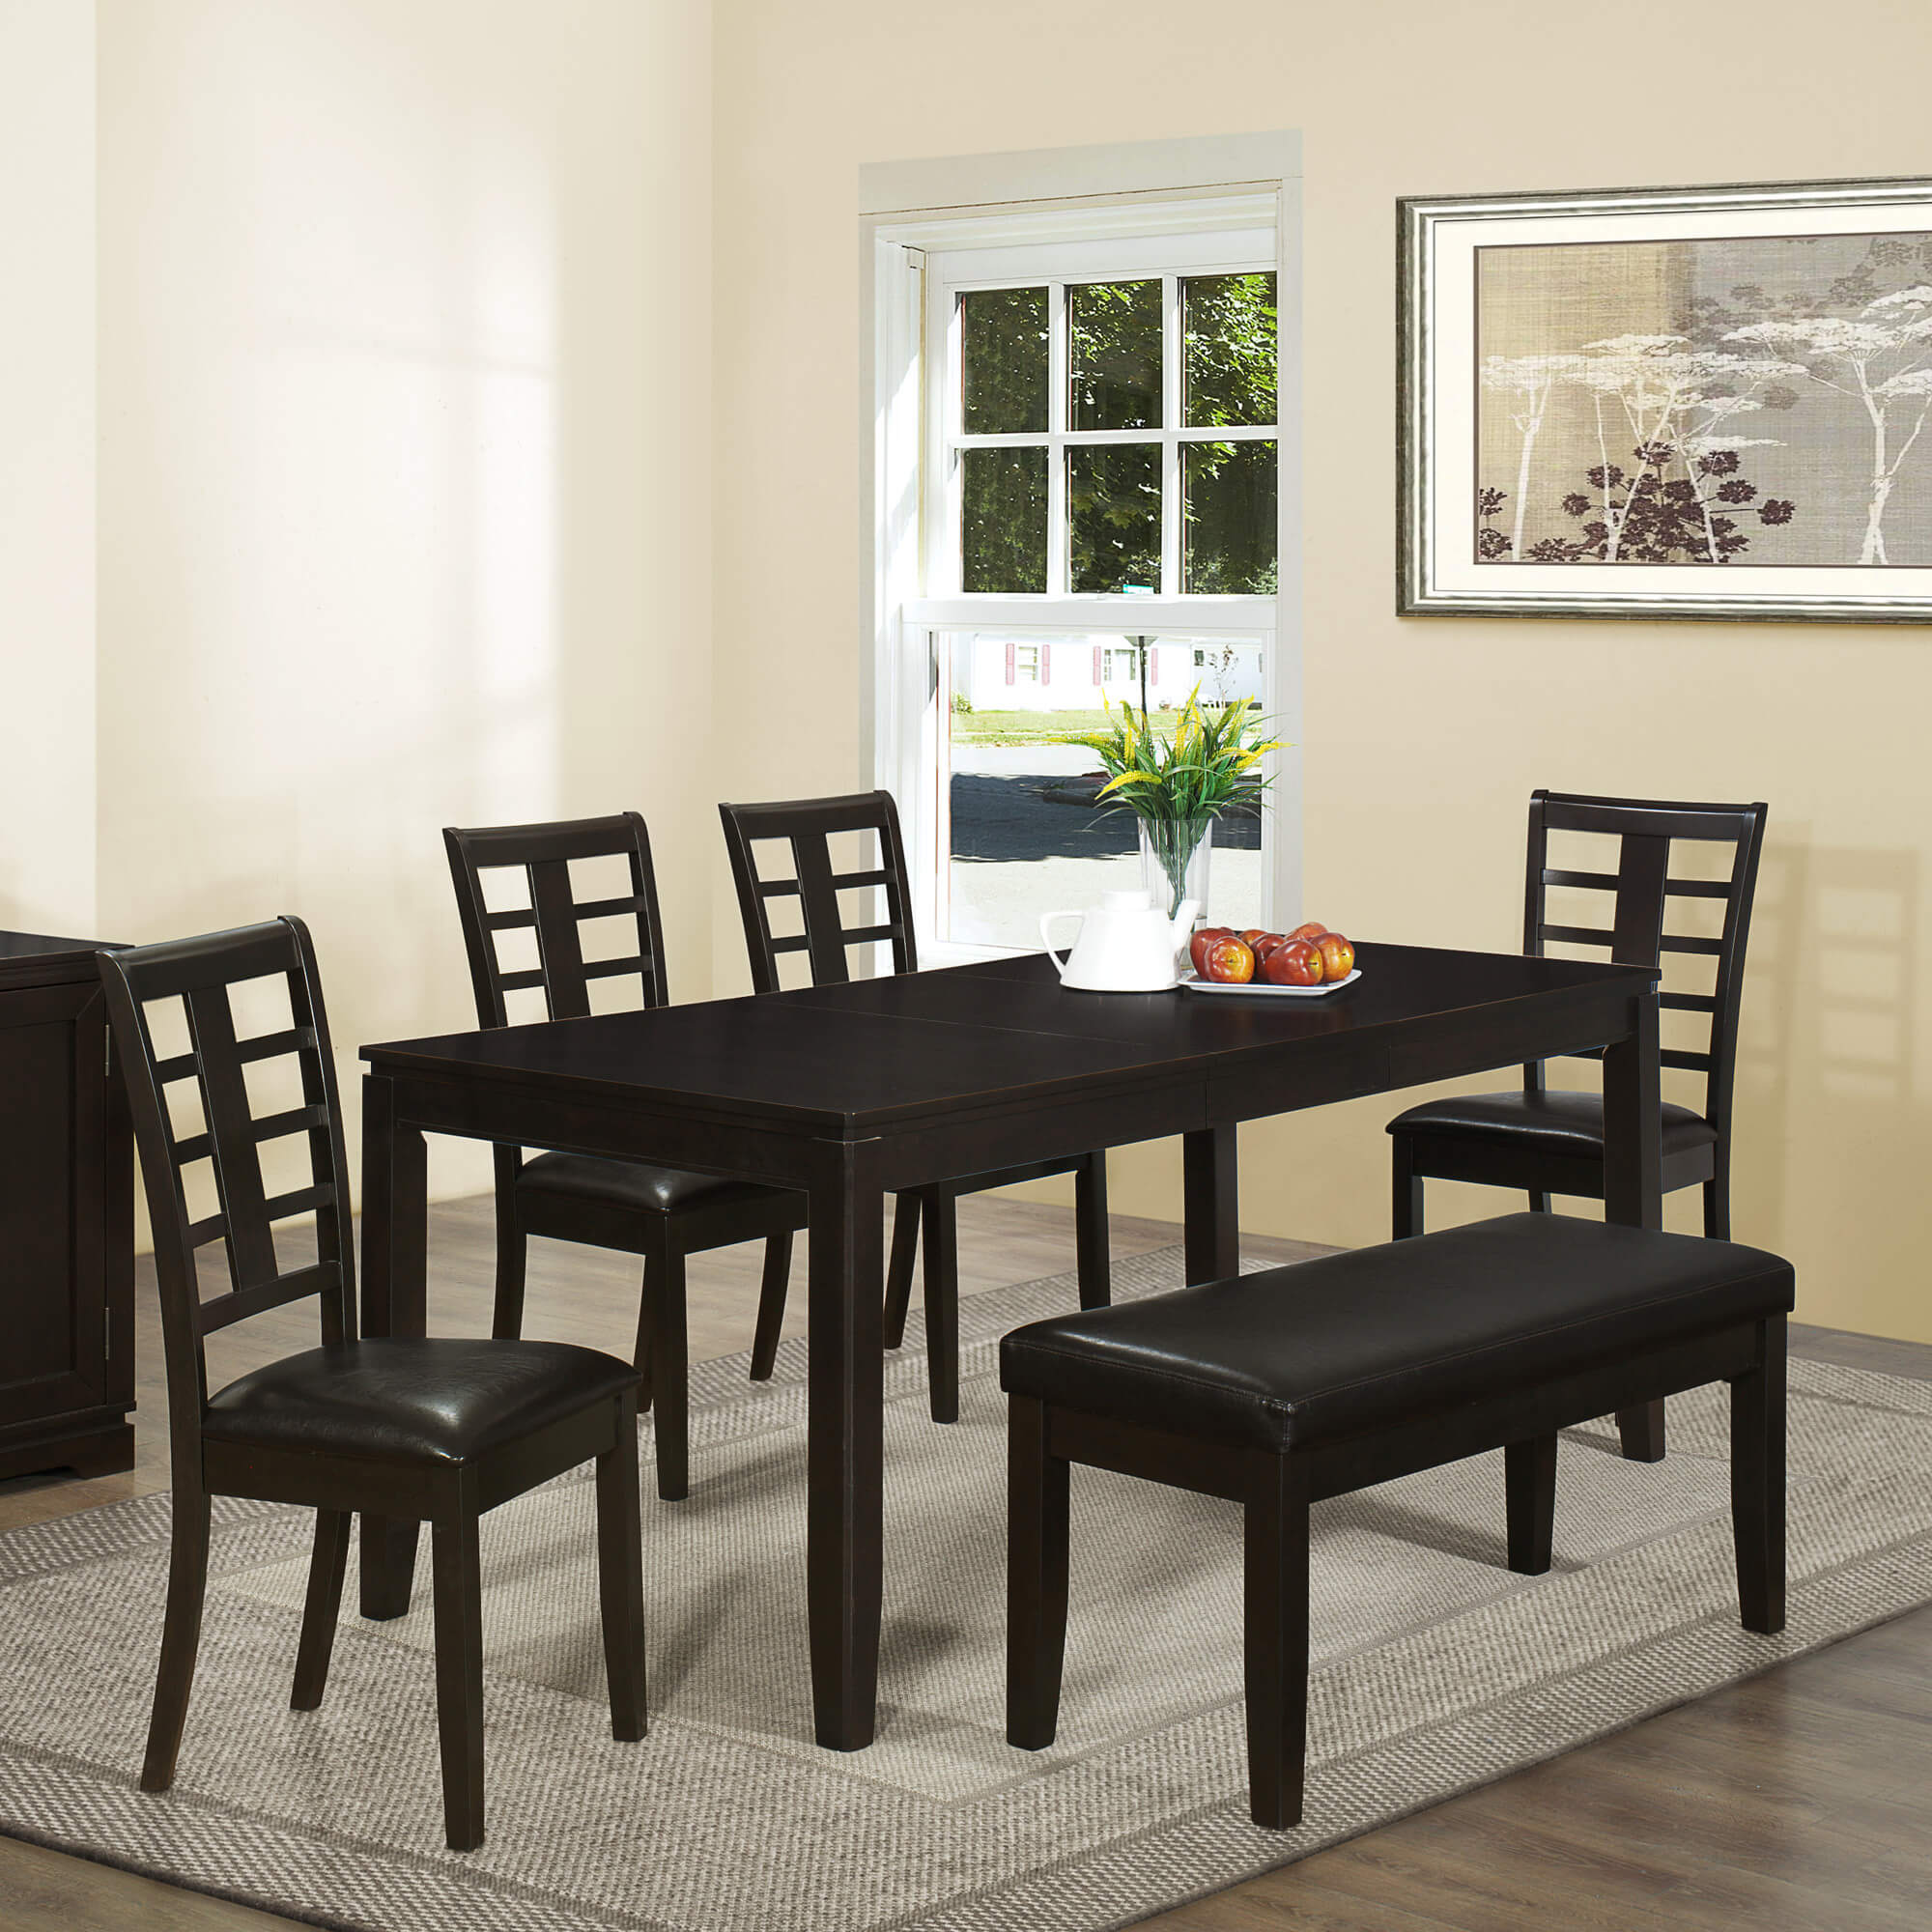 26 Dining Room Sets Big And Small With Bench Seating 2019